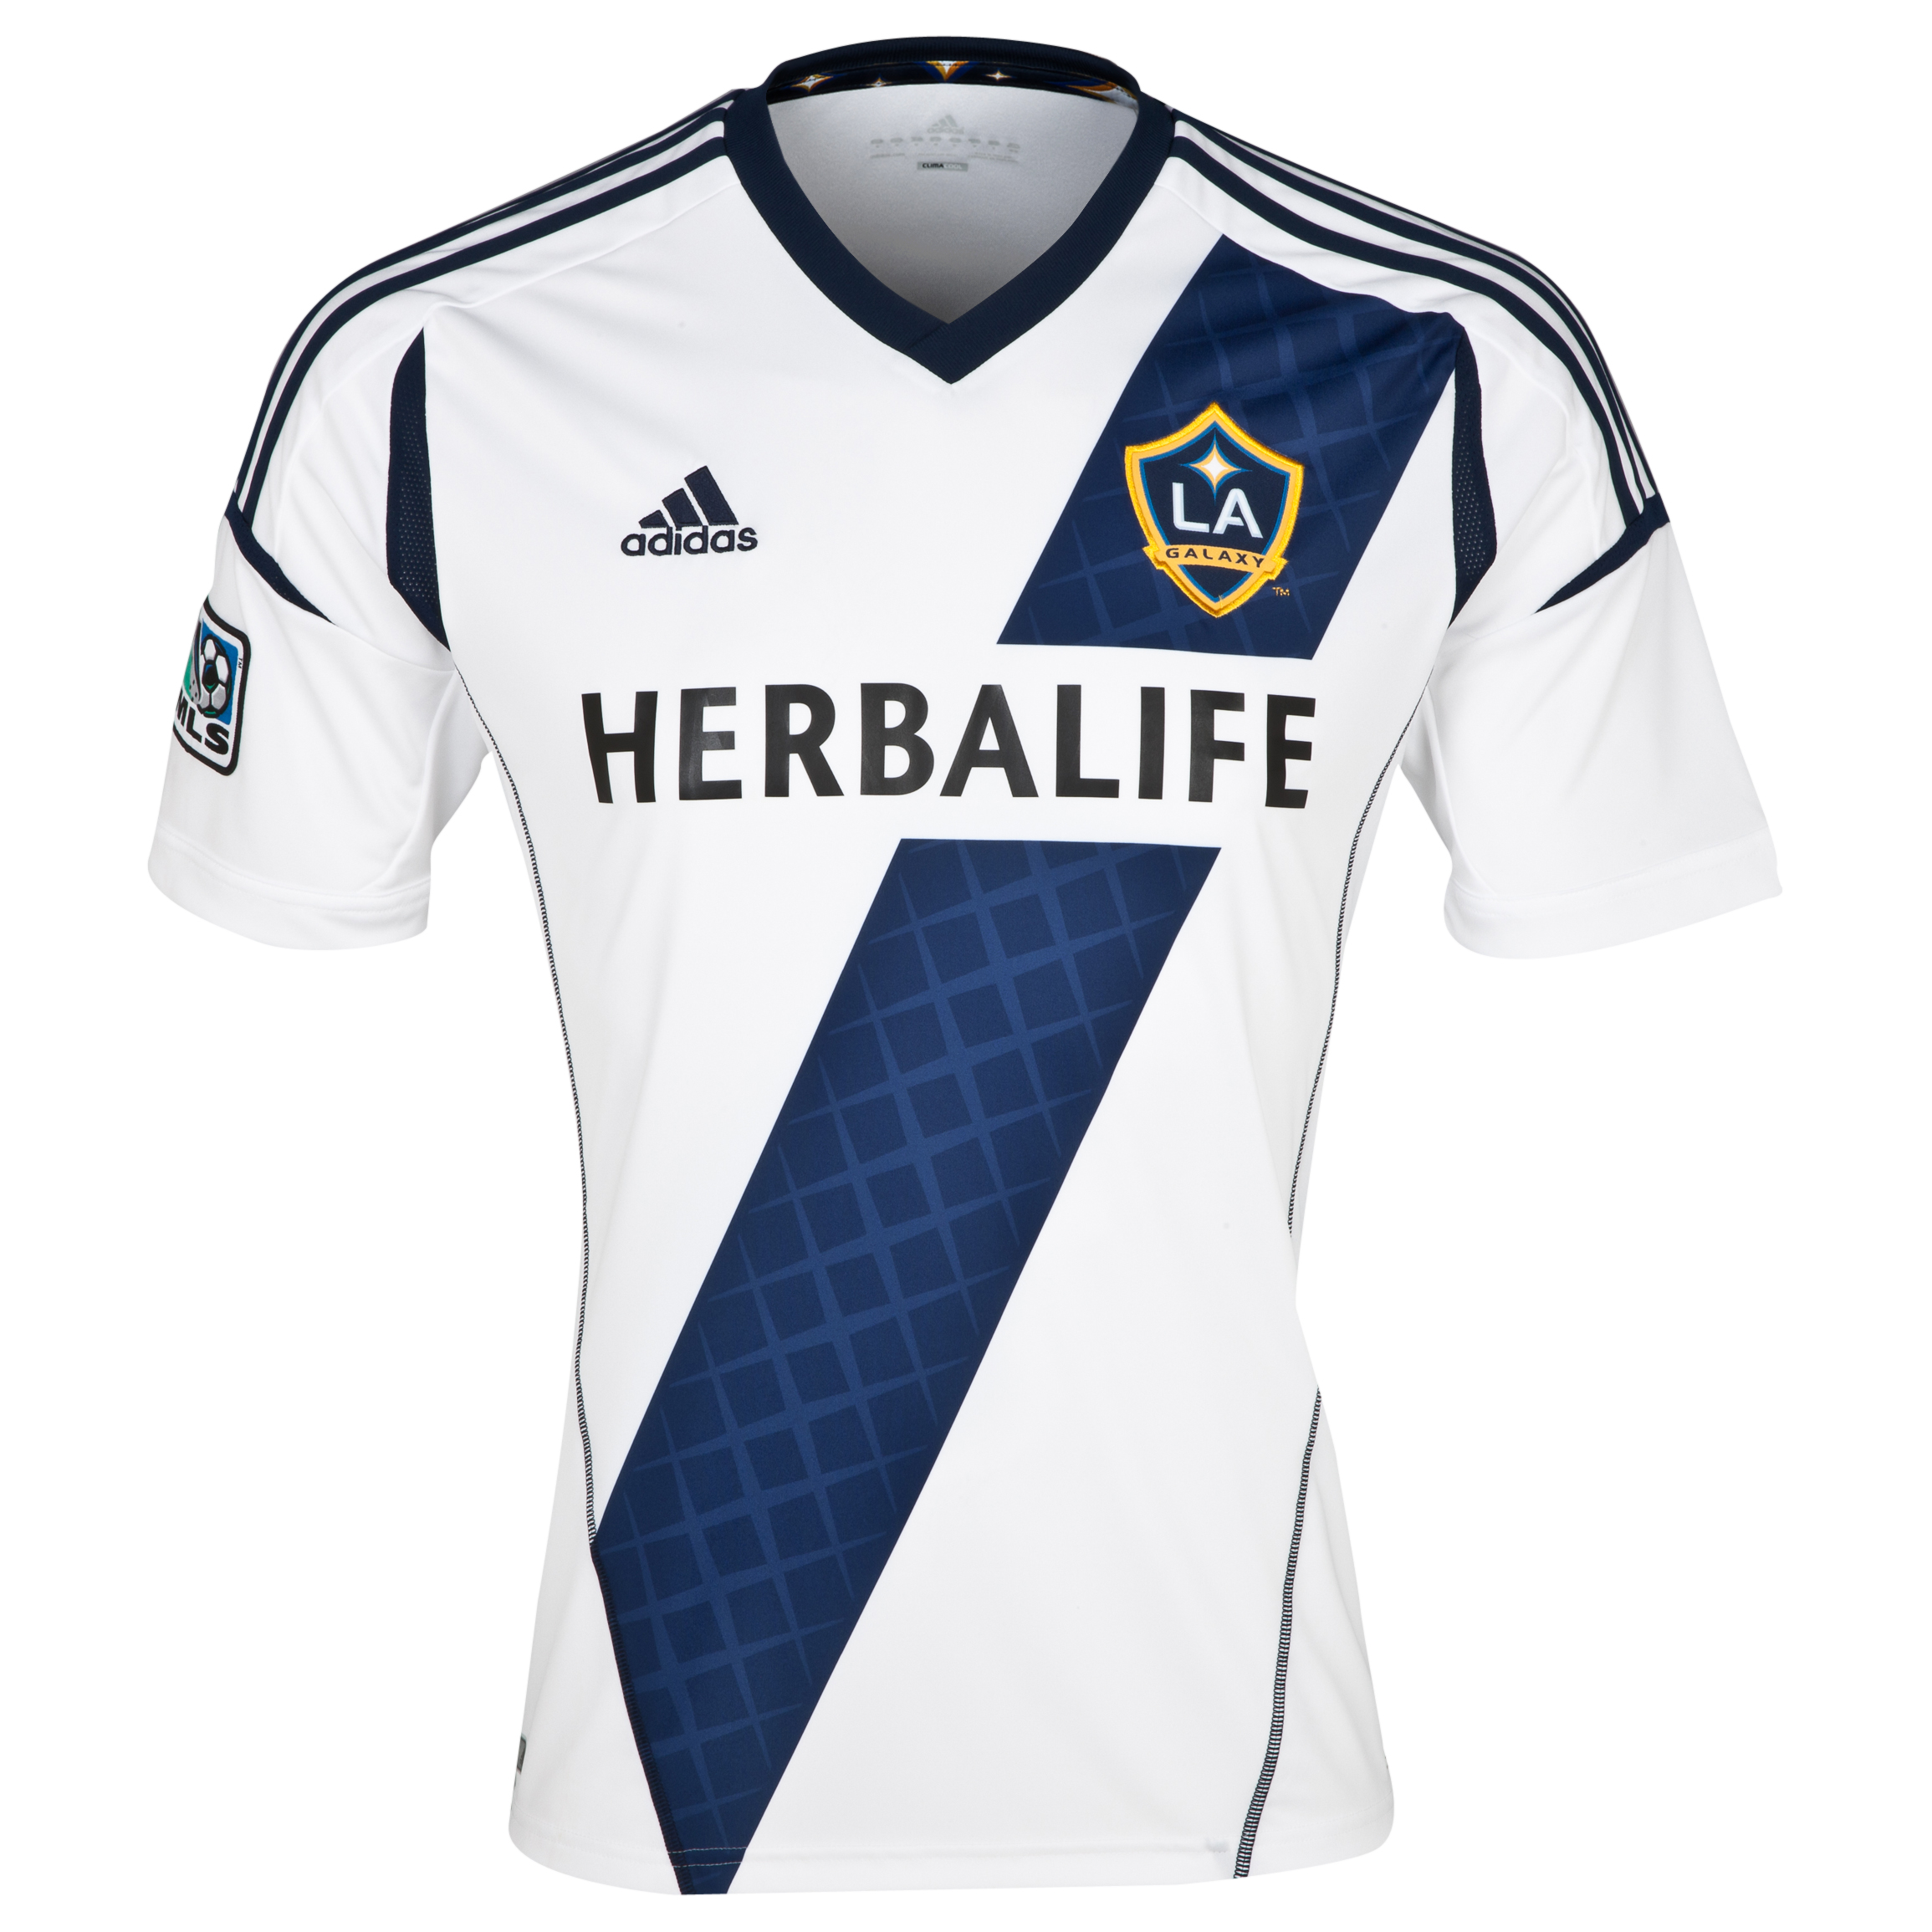 LA Galaxy Home Shirt 2013/14